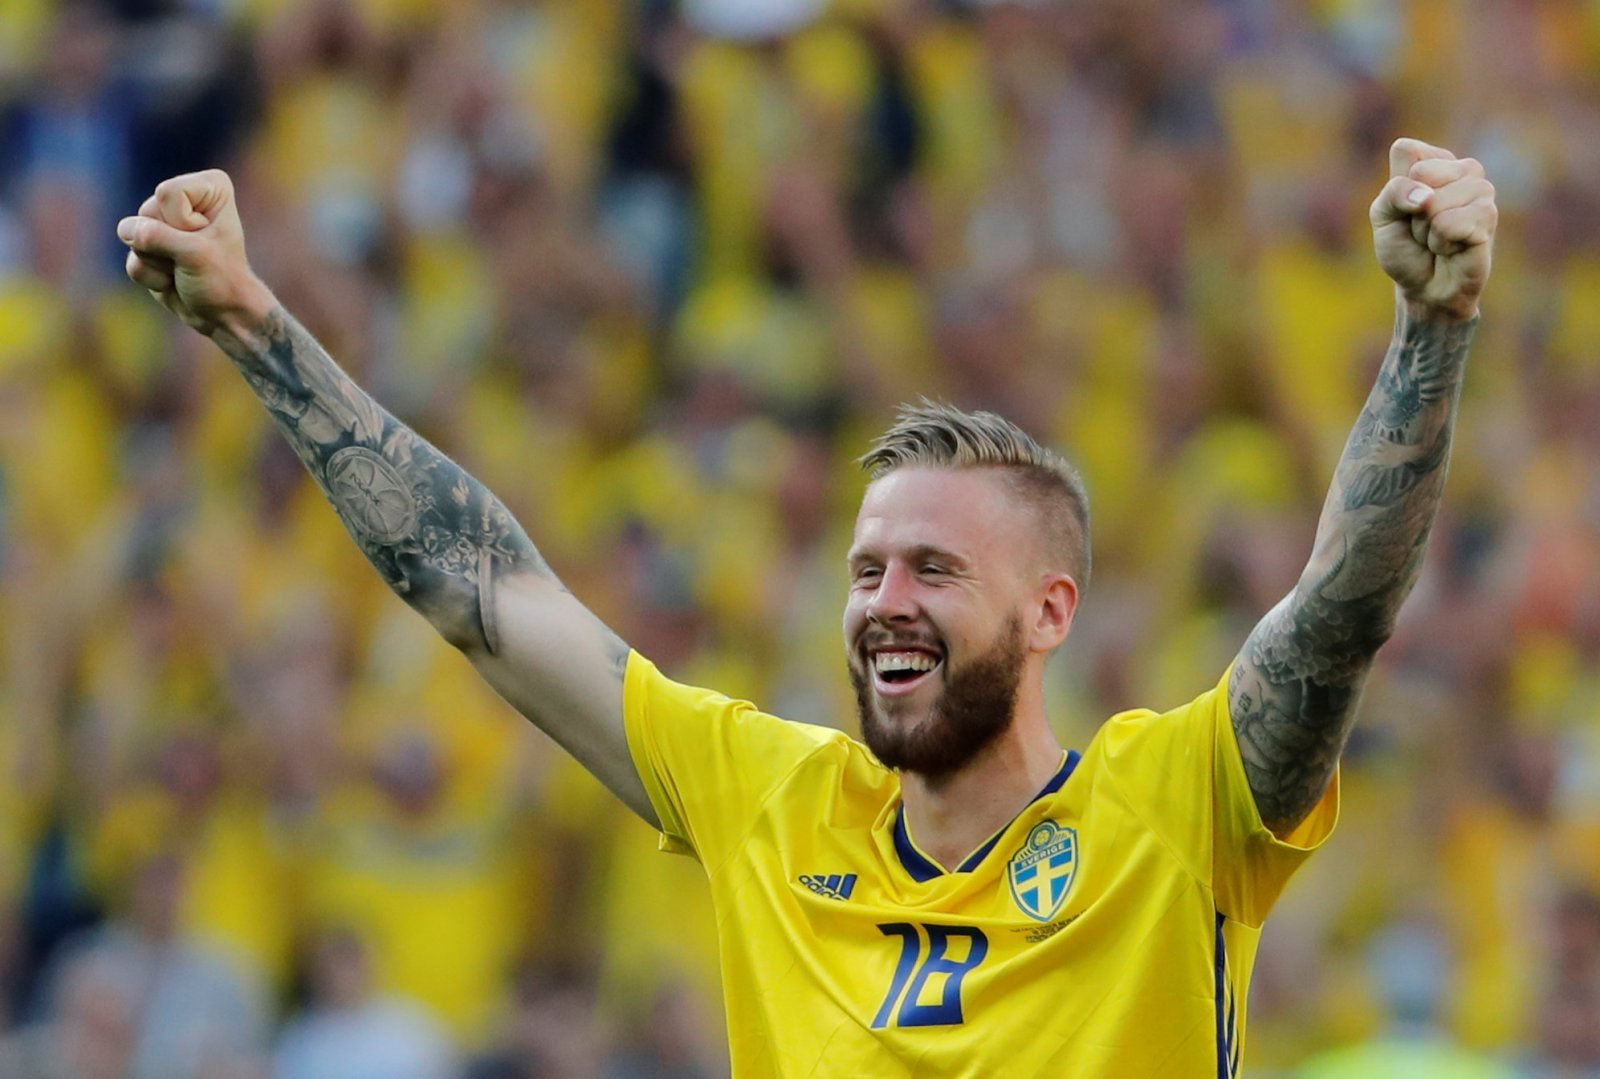 Leeds fans want Pontus Jansson to start against Middlesbrough